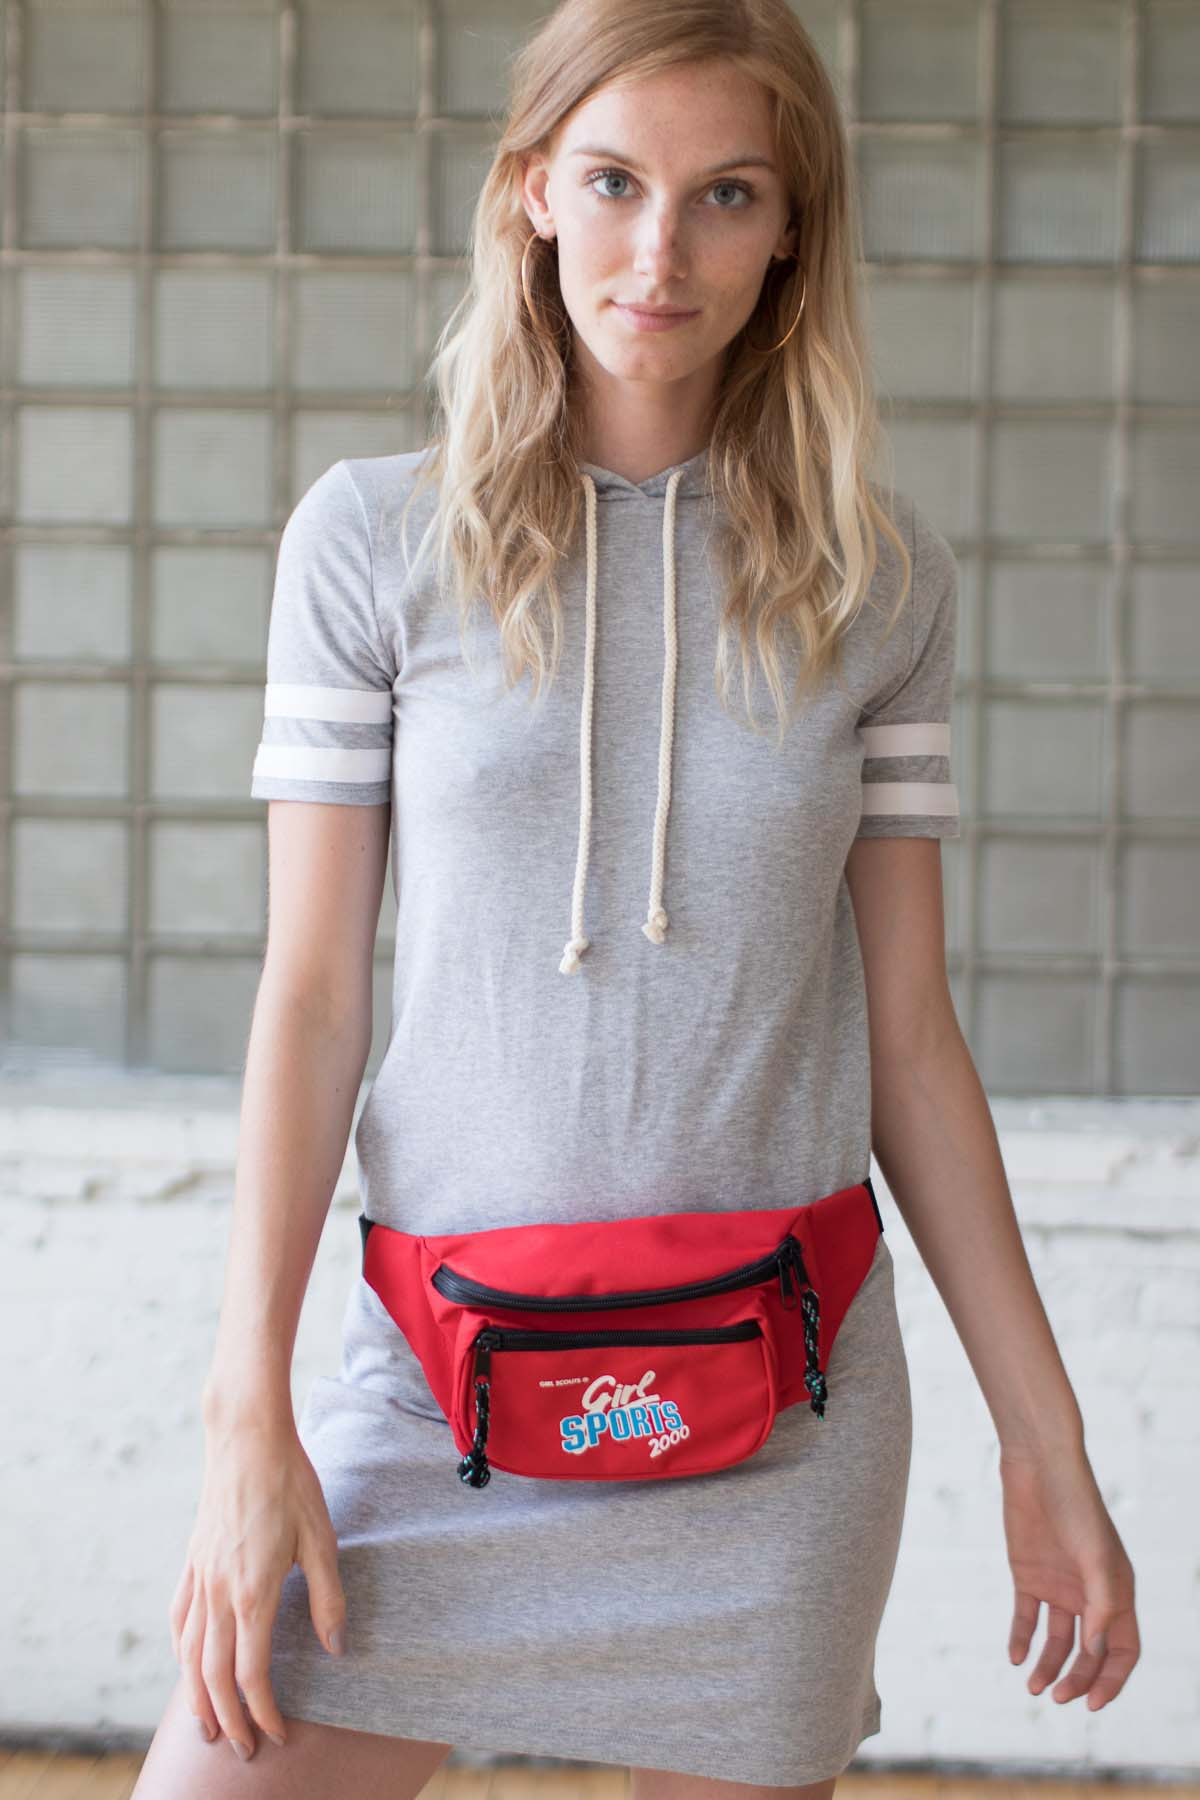 Girl Sports 2000 Vintage Fanny Pack